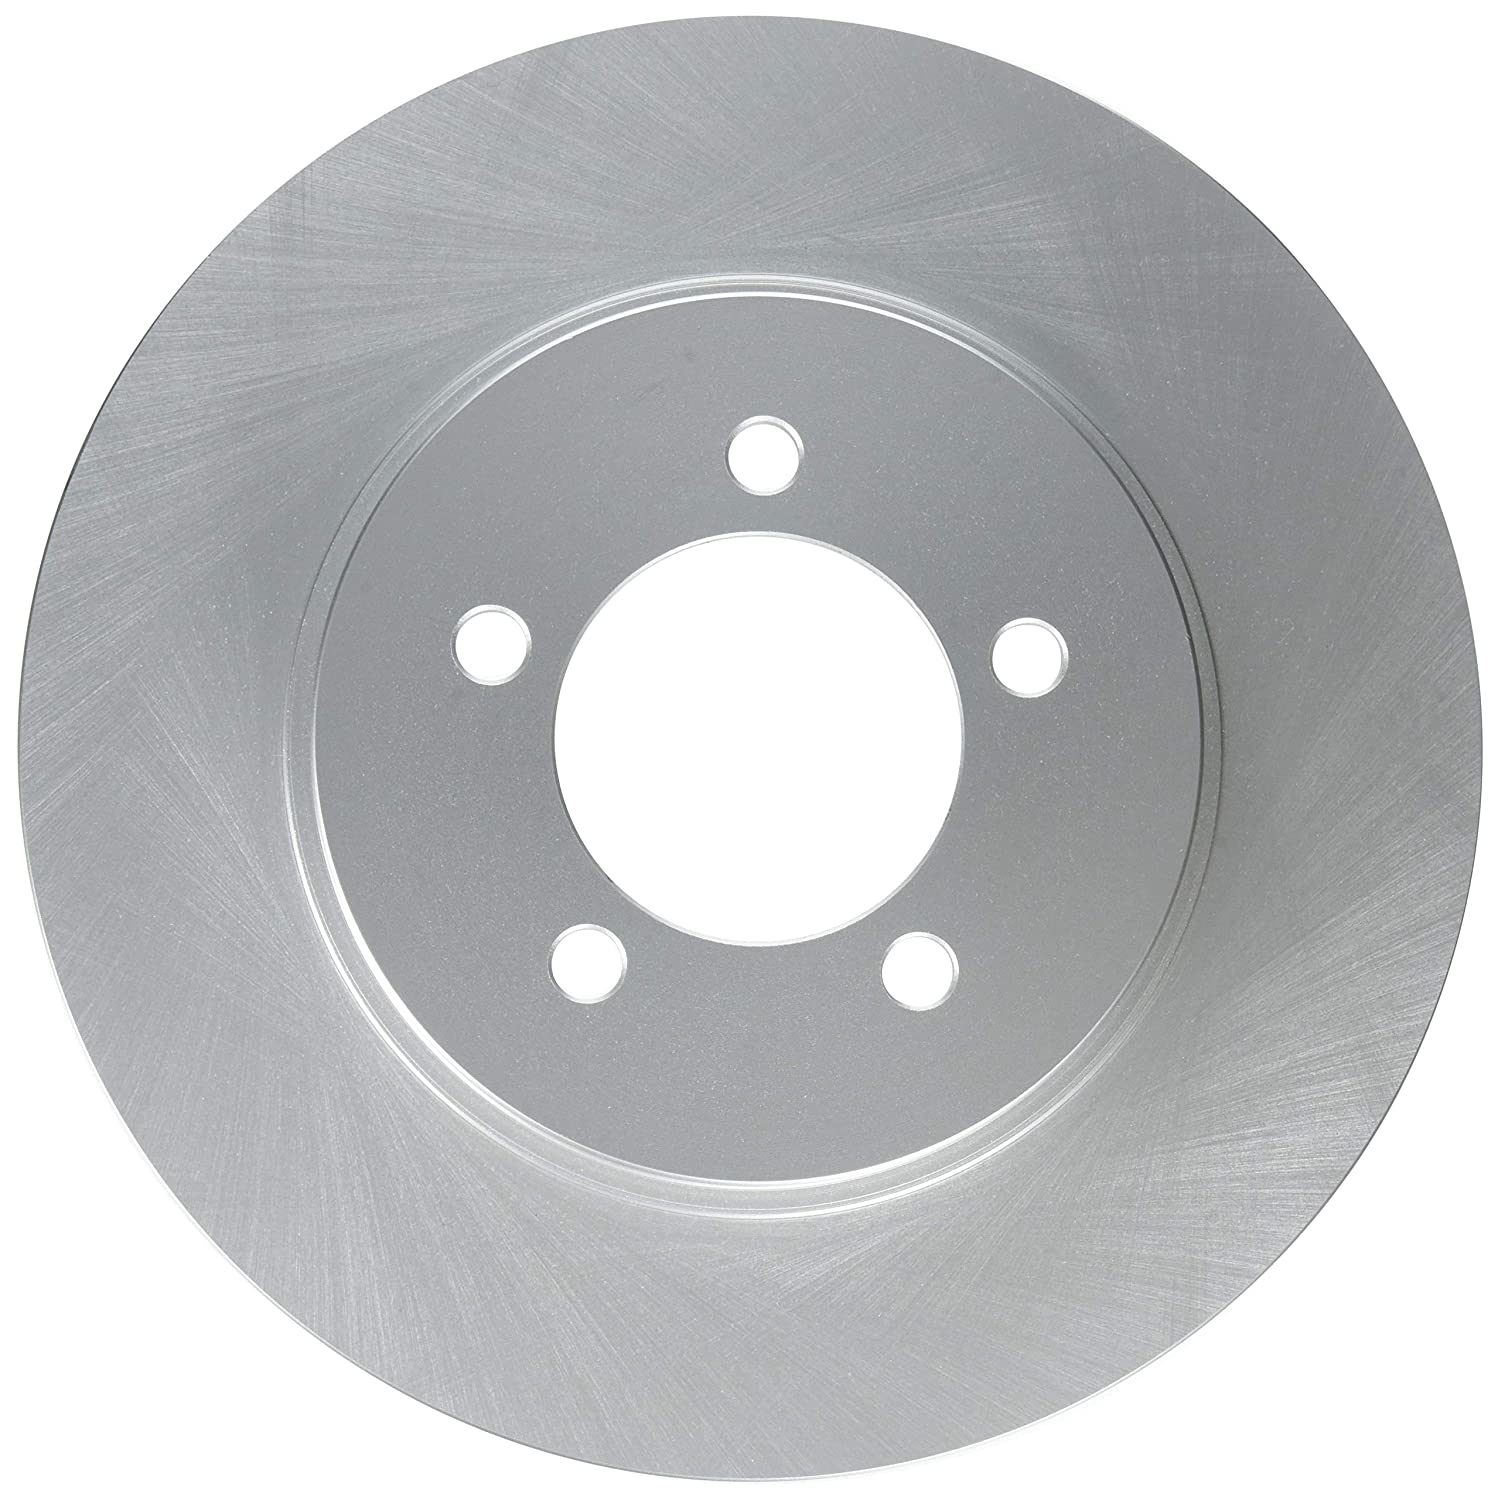 Raybestos 680014FZN Rust Prevention Technology Coated Rotor Brake